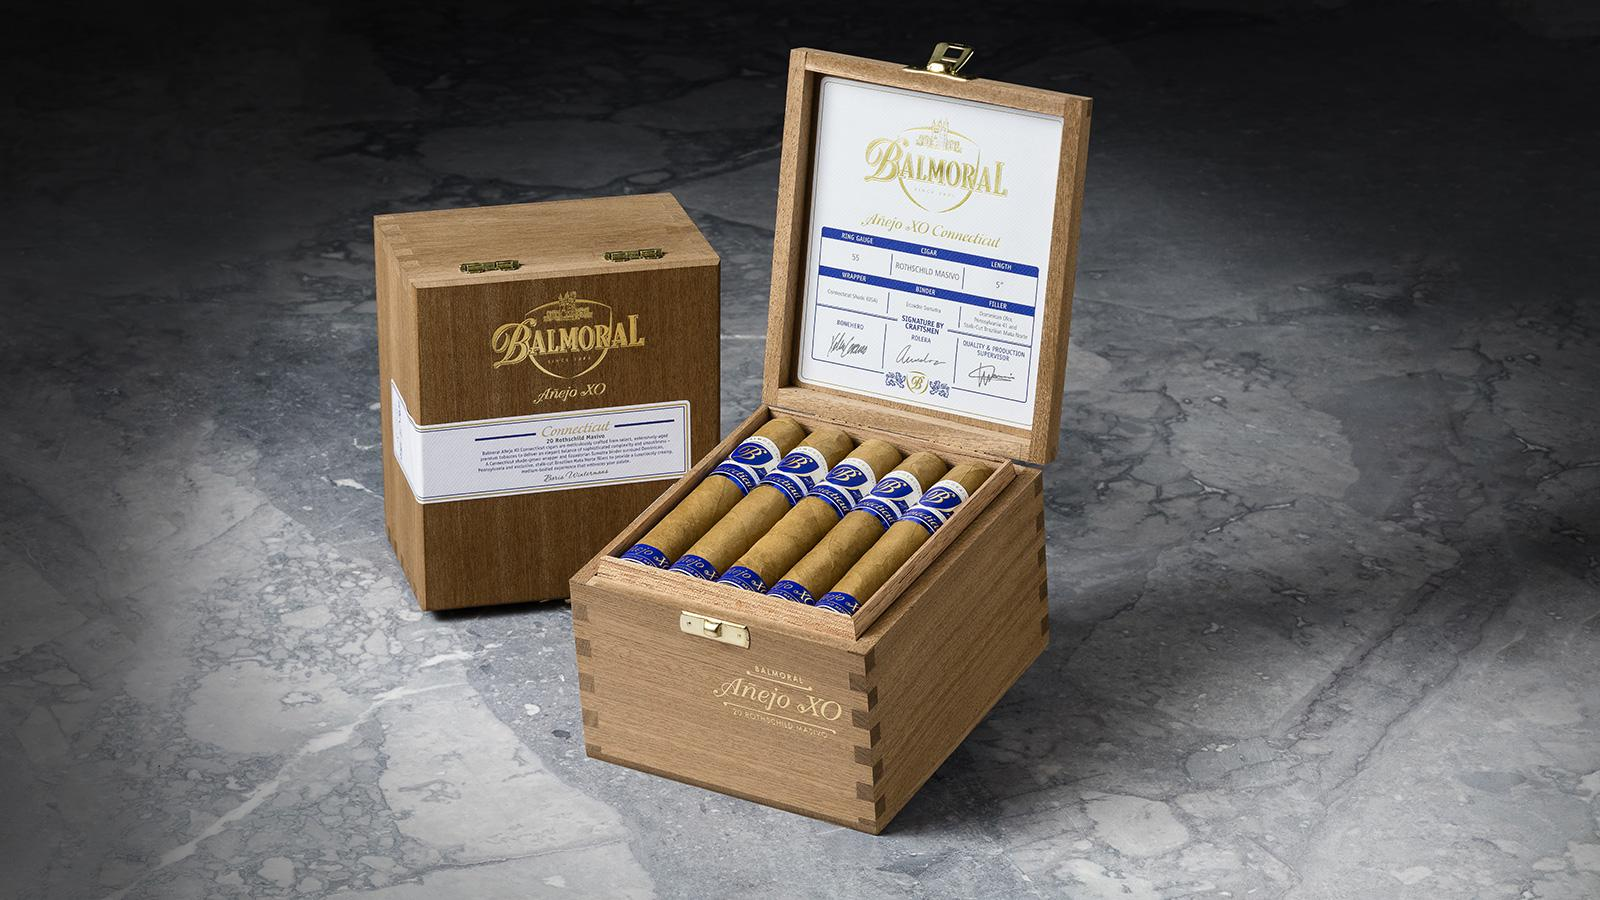 Royal Agio to Release Two New Balmoral Cigars